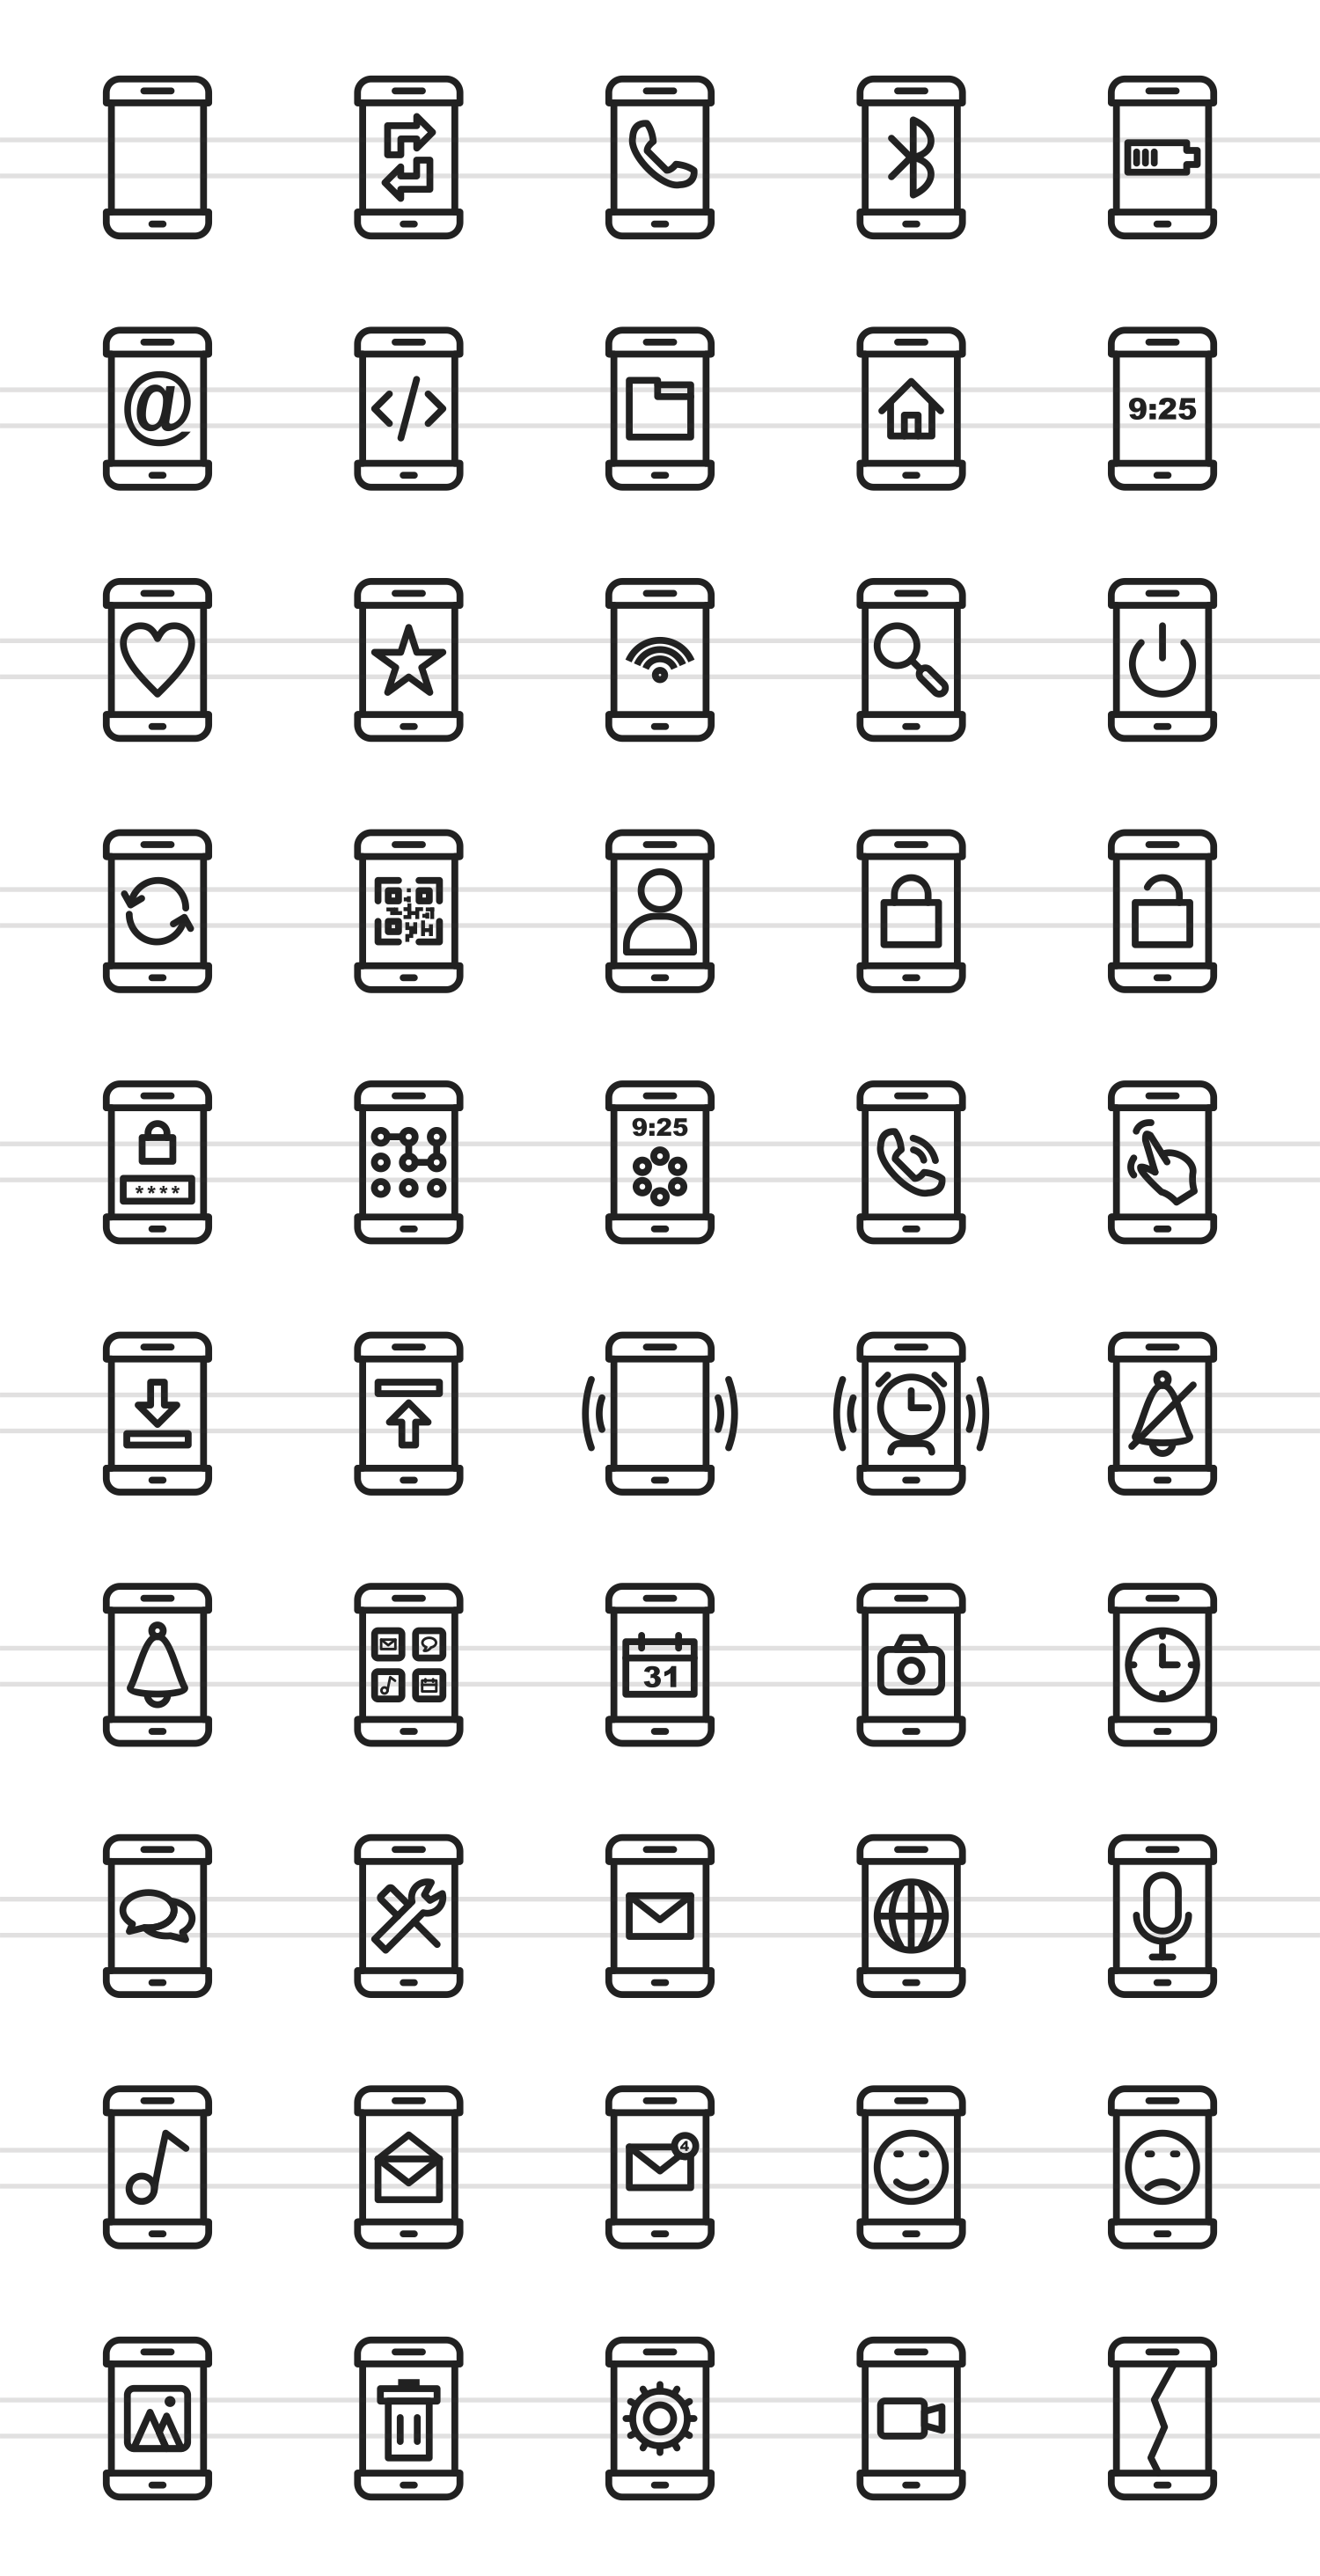 50 Smartphone Line Icons example image 2